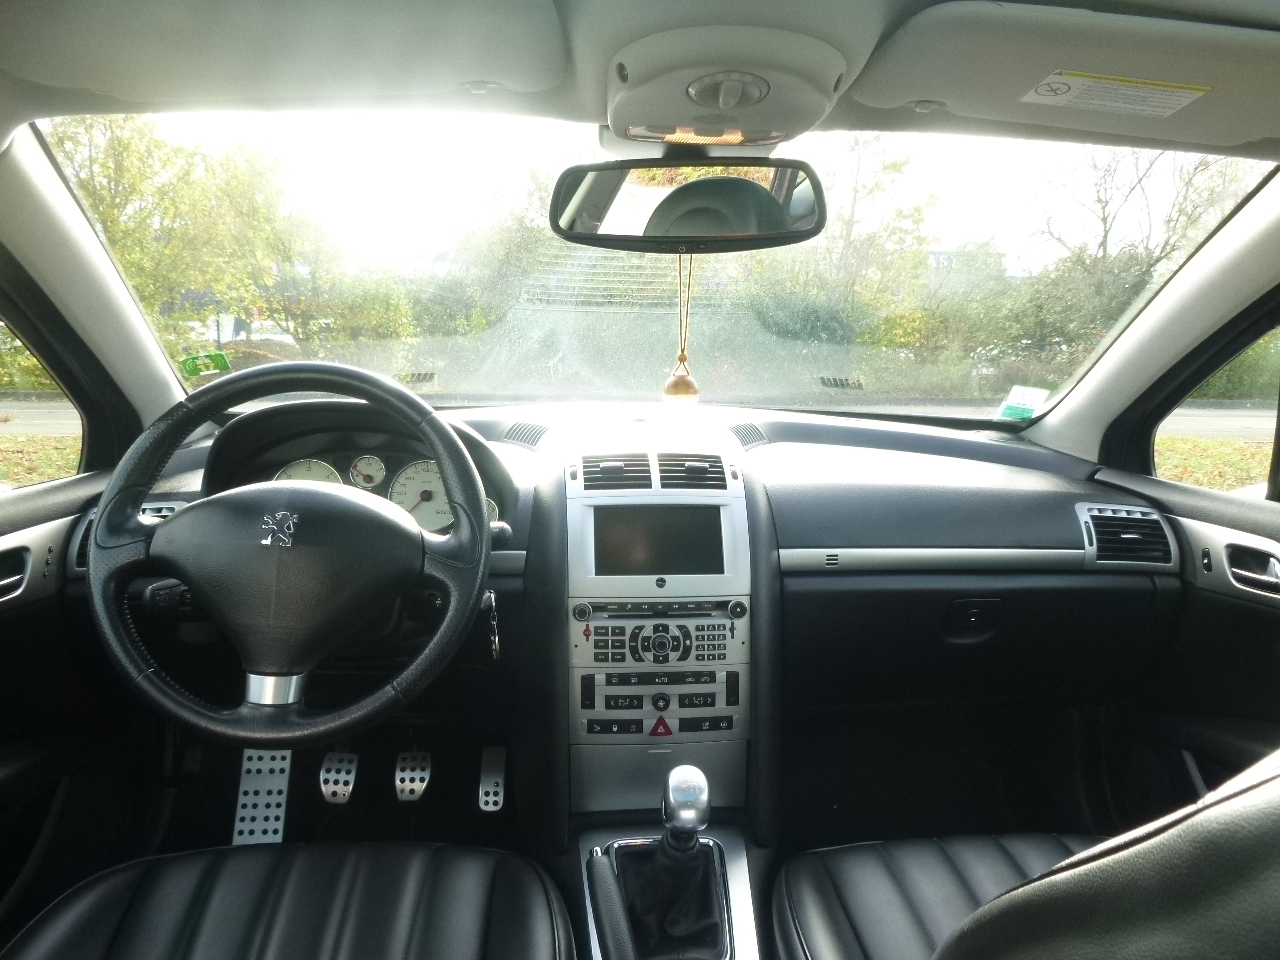 ... PEUGEOT 407 SW 2.2 HDI 170 GRIFFE ...